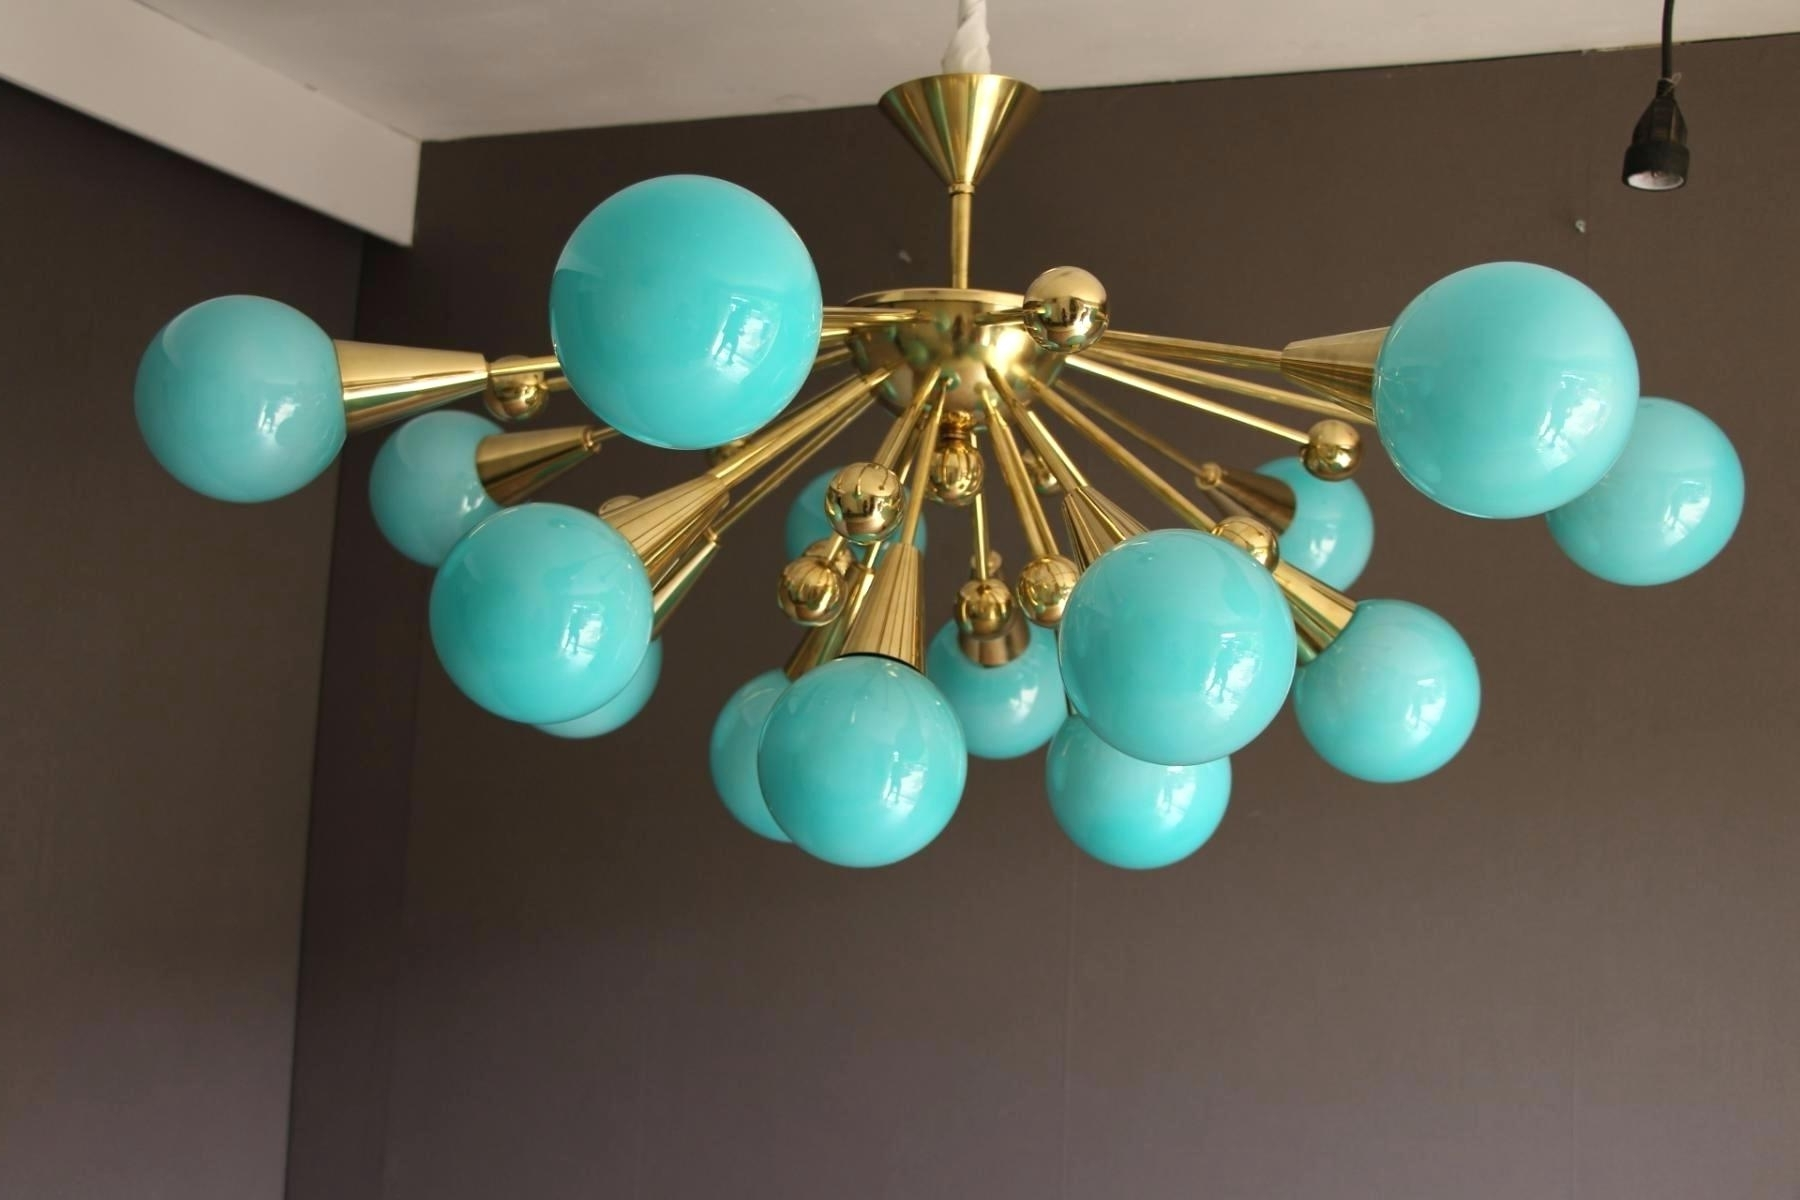 Preferred Hand Blown Glass Lamp Shades Six Arms Turquoise With Gold Flecks Regarding Turquoise Blown Glass Chandeliers (View 9 of 20)